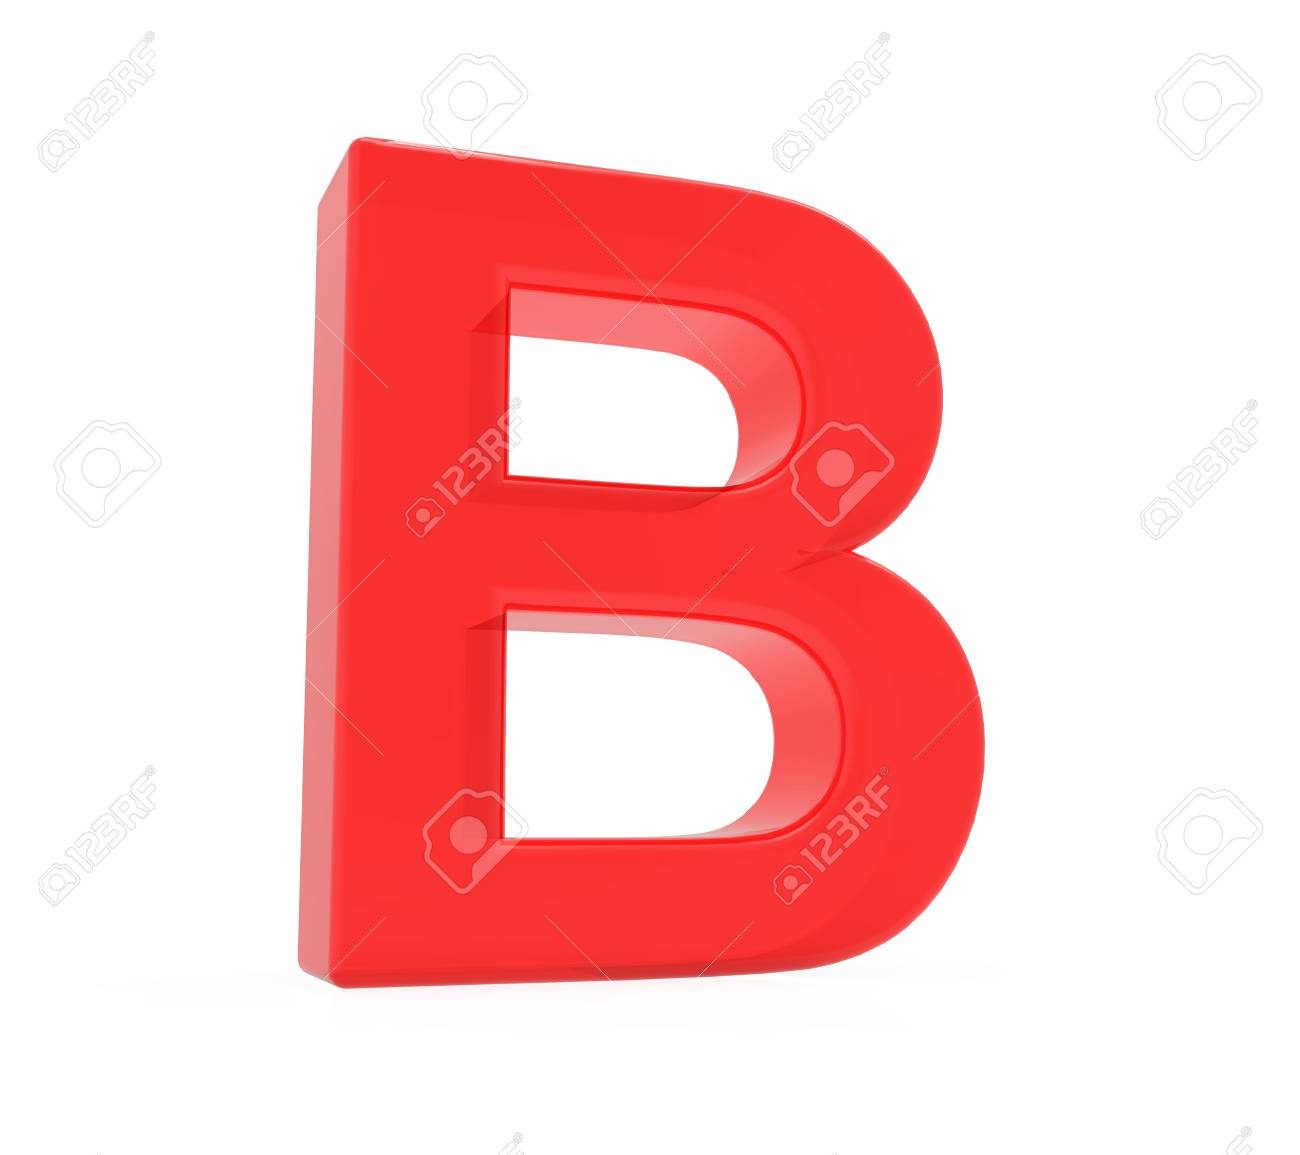 Red Letter B, 3D Rendering Graphic Isolated On White Background